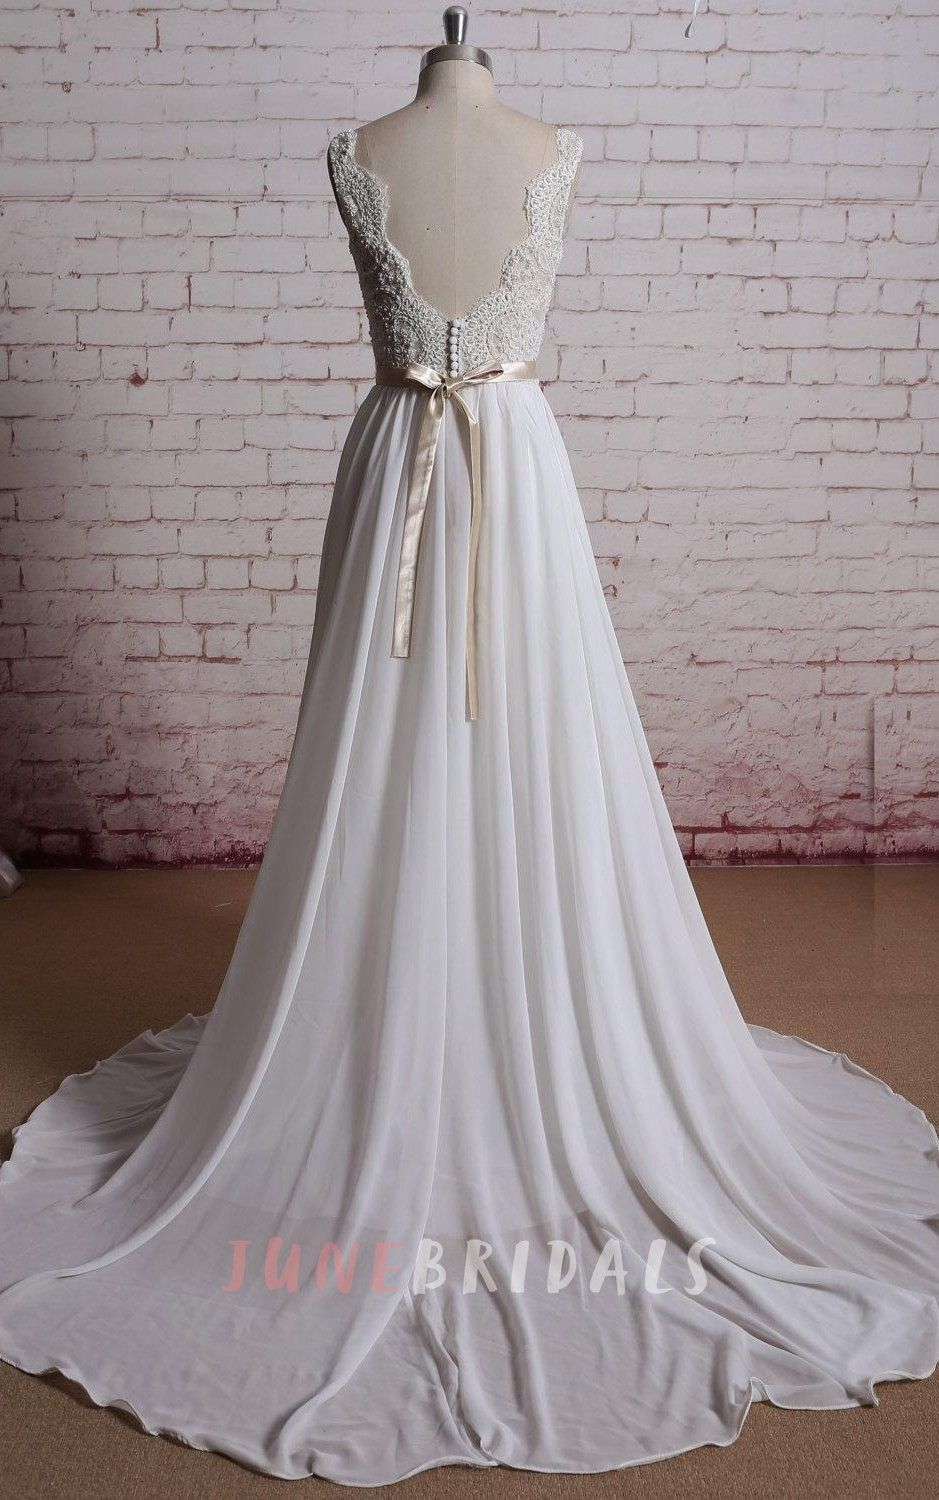 Champagne and ivory wedding dress  VNeck Long Chiffon Bridal Gown With Champagne Lining of the Bodice